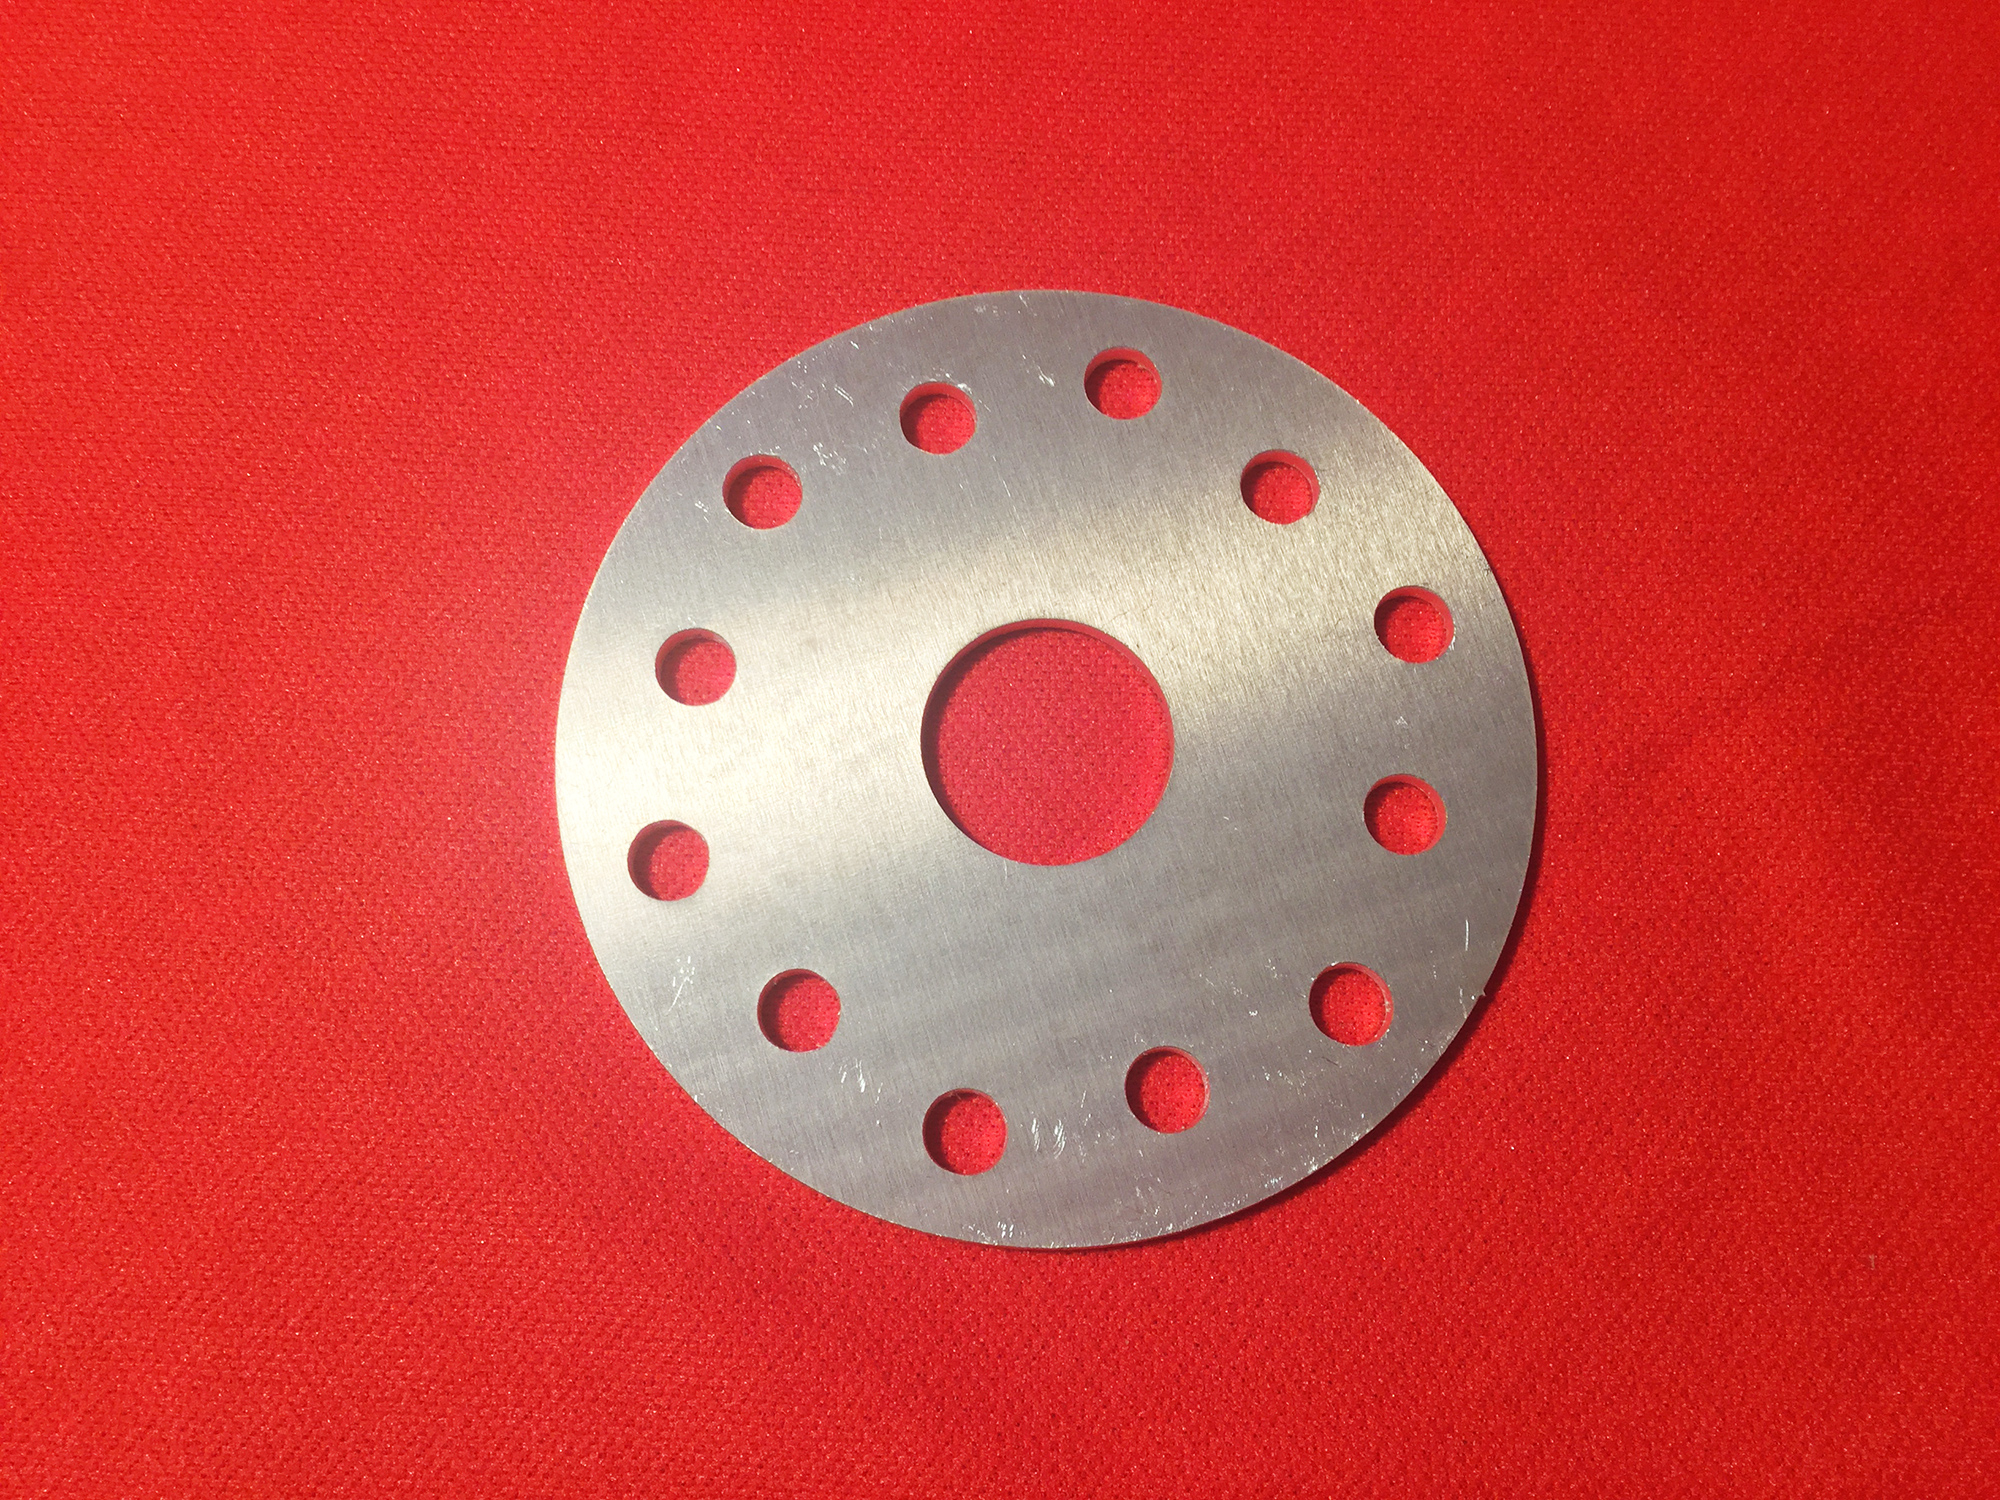 """Crush or Face Plate - 3/16"""" aluminum plate. One-inch center pilot hole. Six, 5/16"""" or 8mm holes on standard Rotax 75mm bolt circle and 2 3/4"""" bolt circle."""